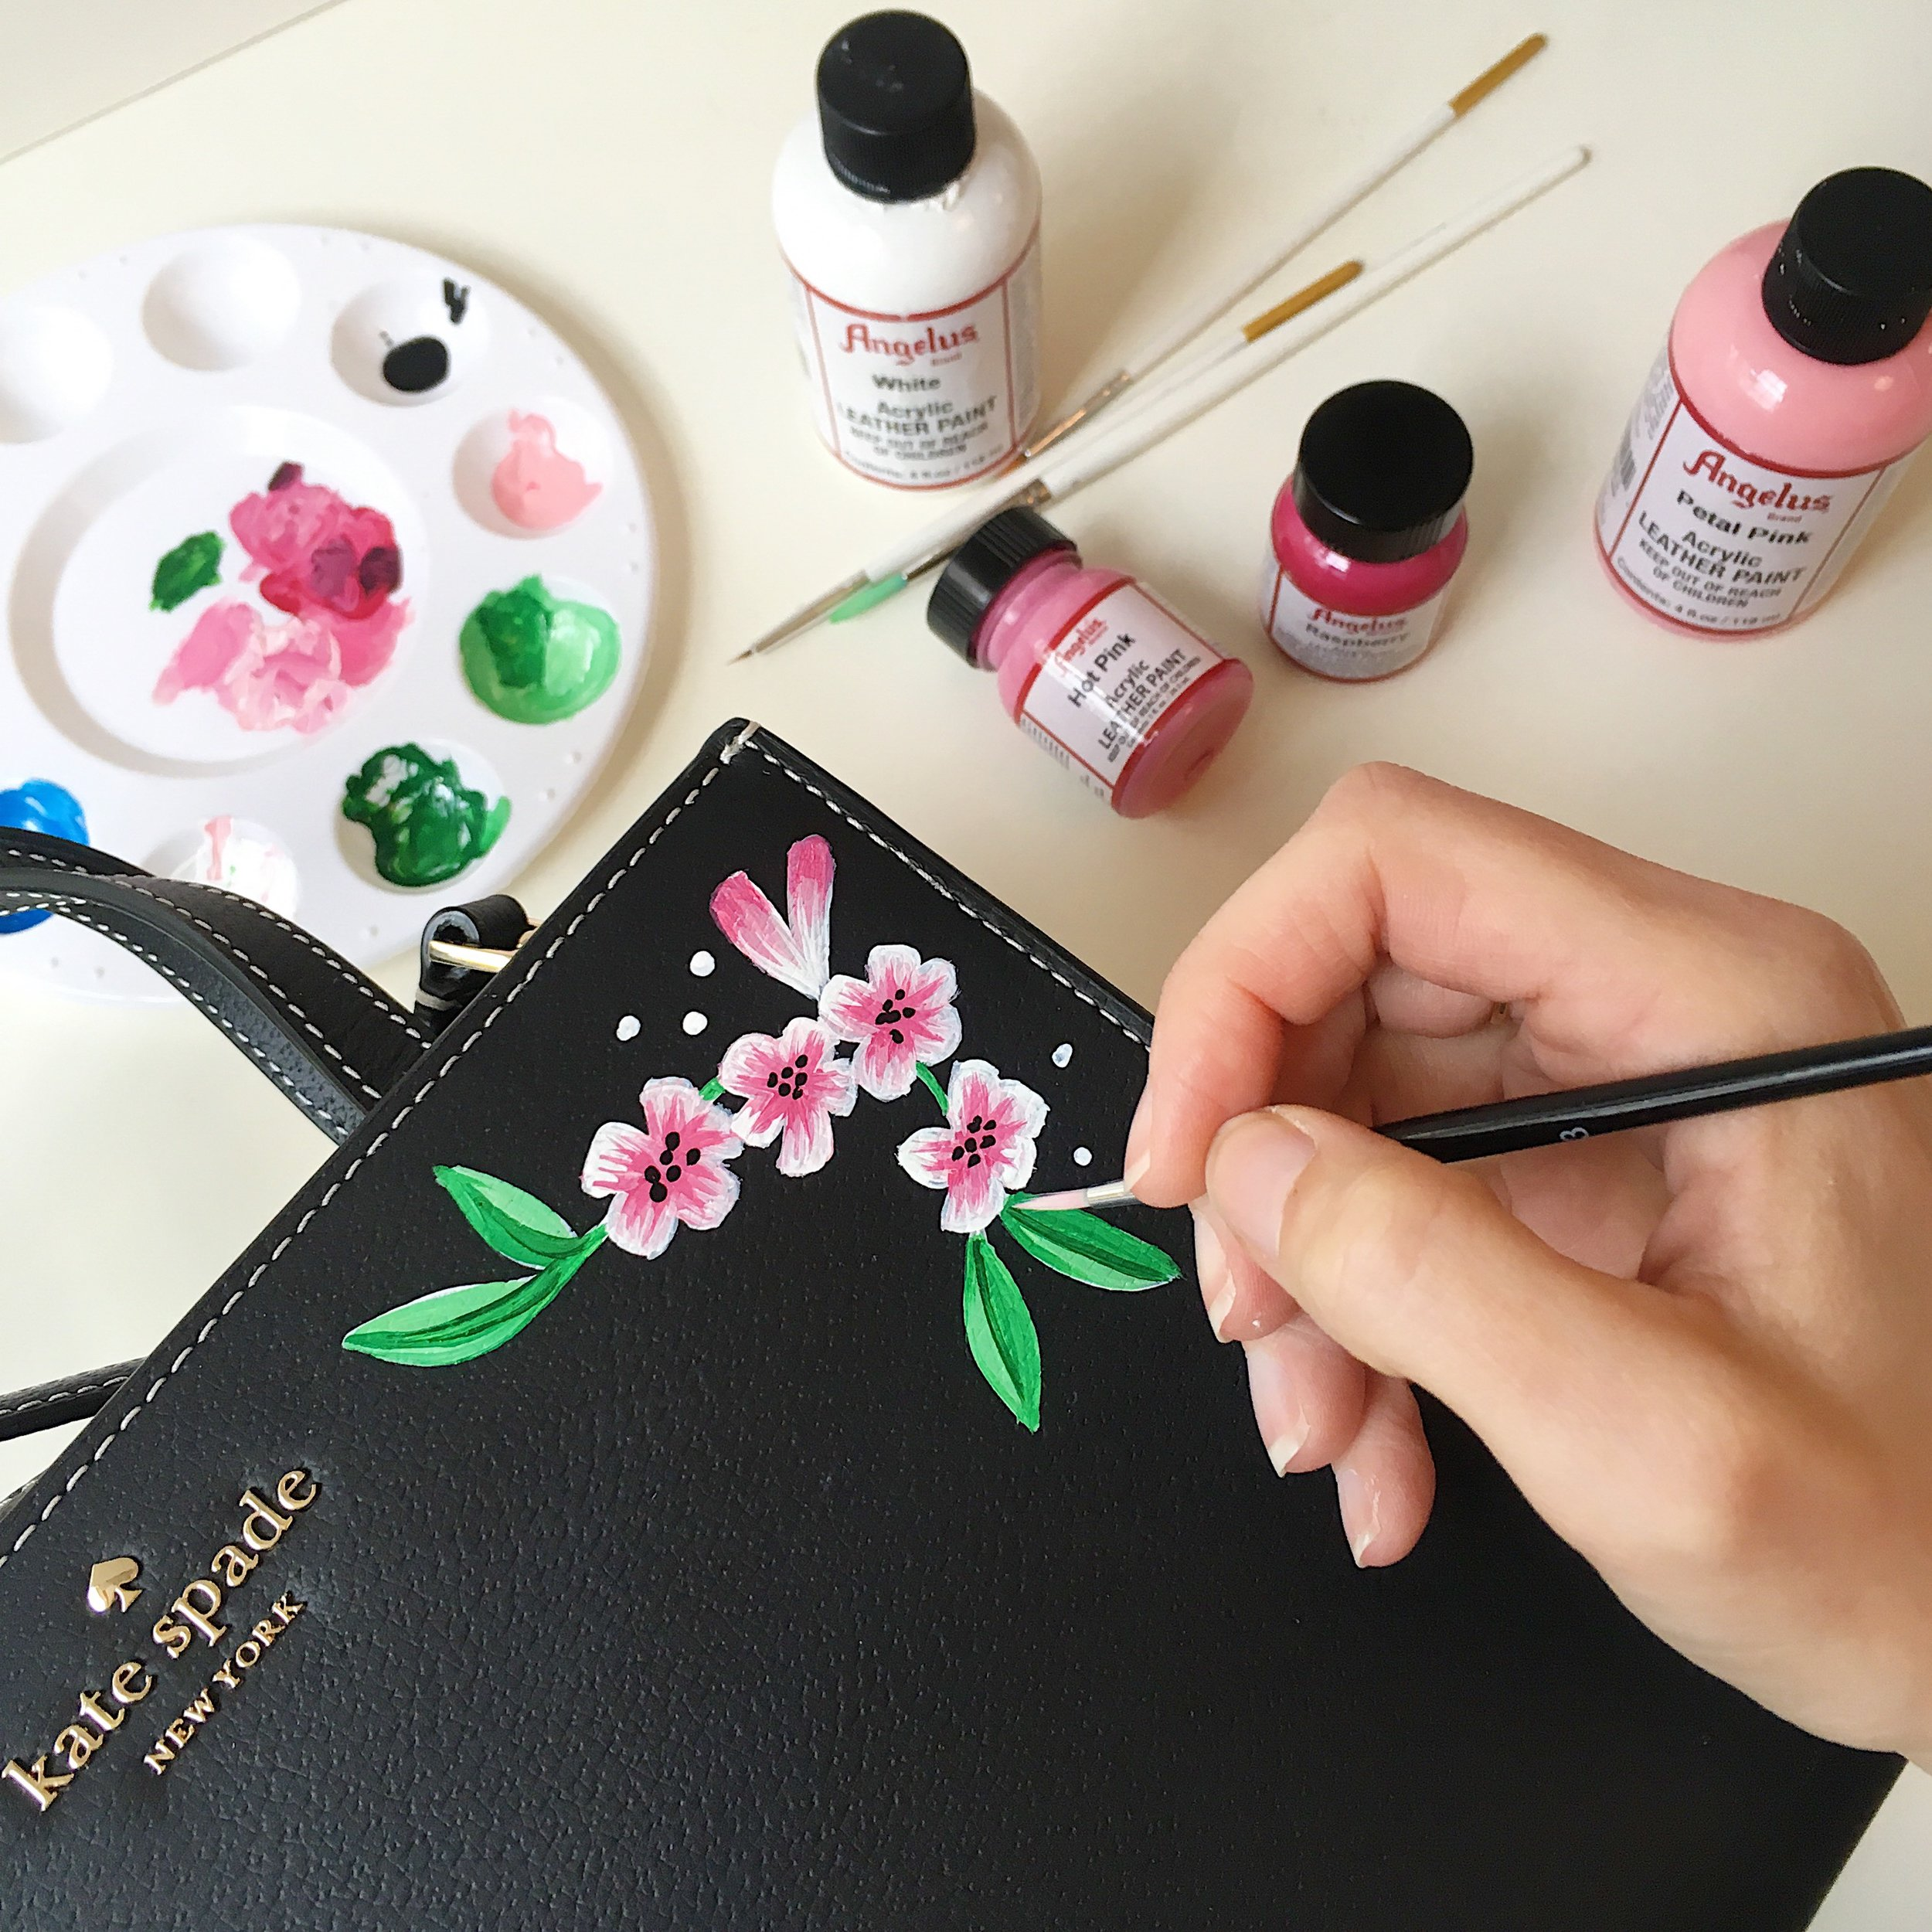 Leather painting at Kate Spade - a live illustration event